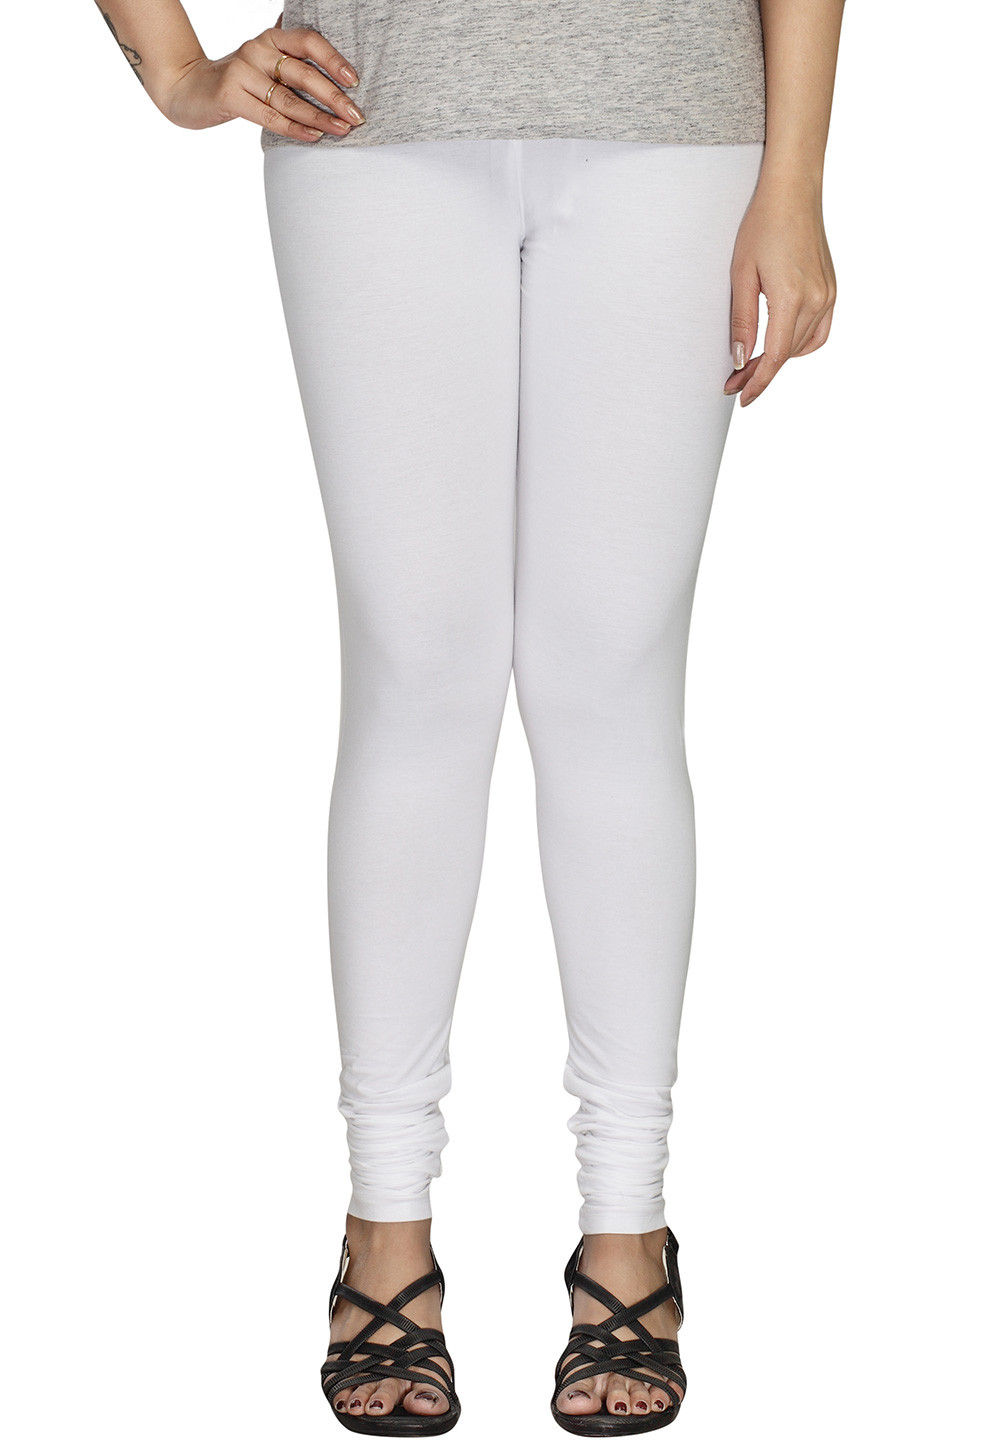 6b784a85dd3fb ... Solid Color Cotton Lycra Leggings in Off White. Zoom